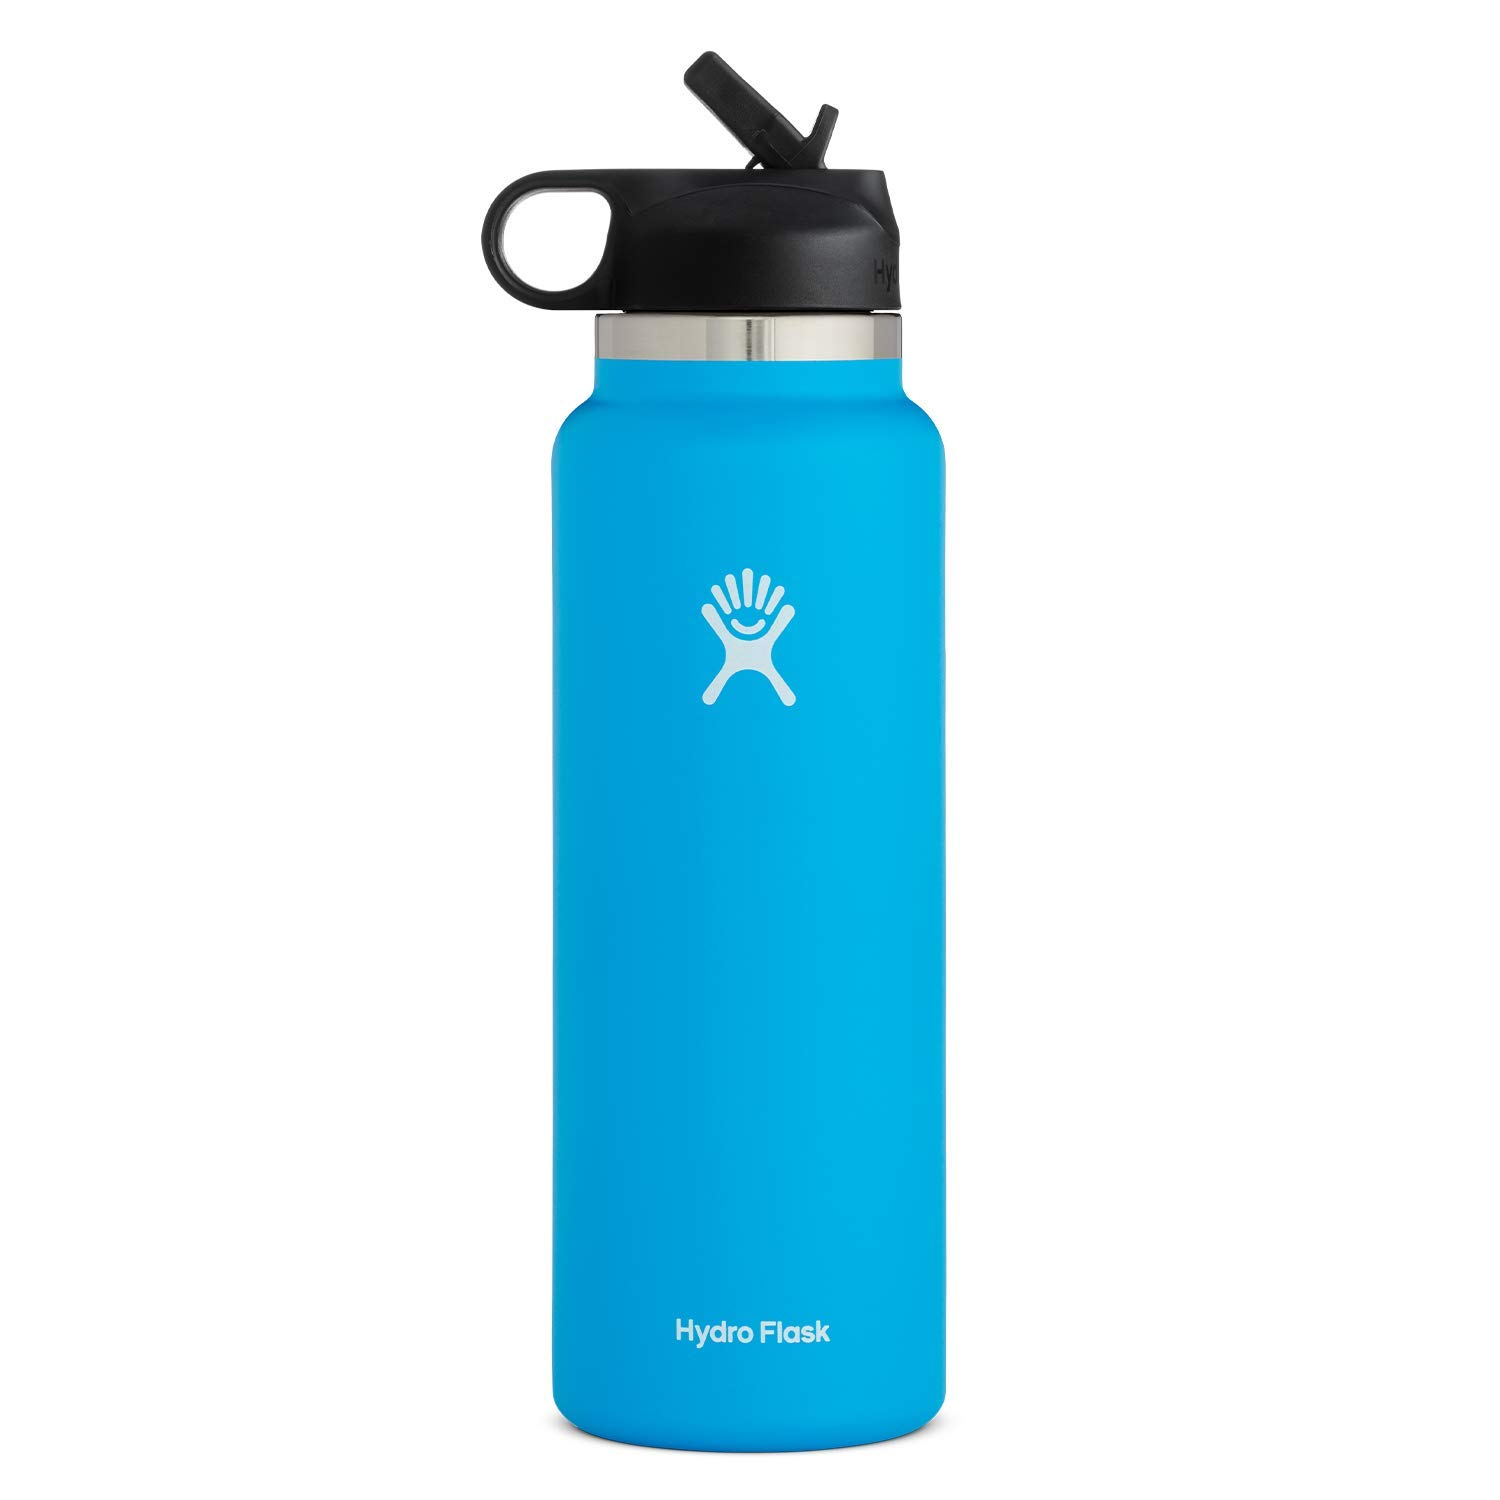 Hydro Flask Water Bottle - Wide Mouth Straw Lid 2.0 - Multiple Sizes & Colors